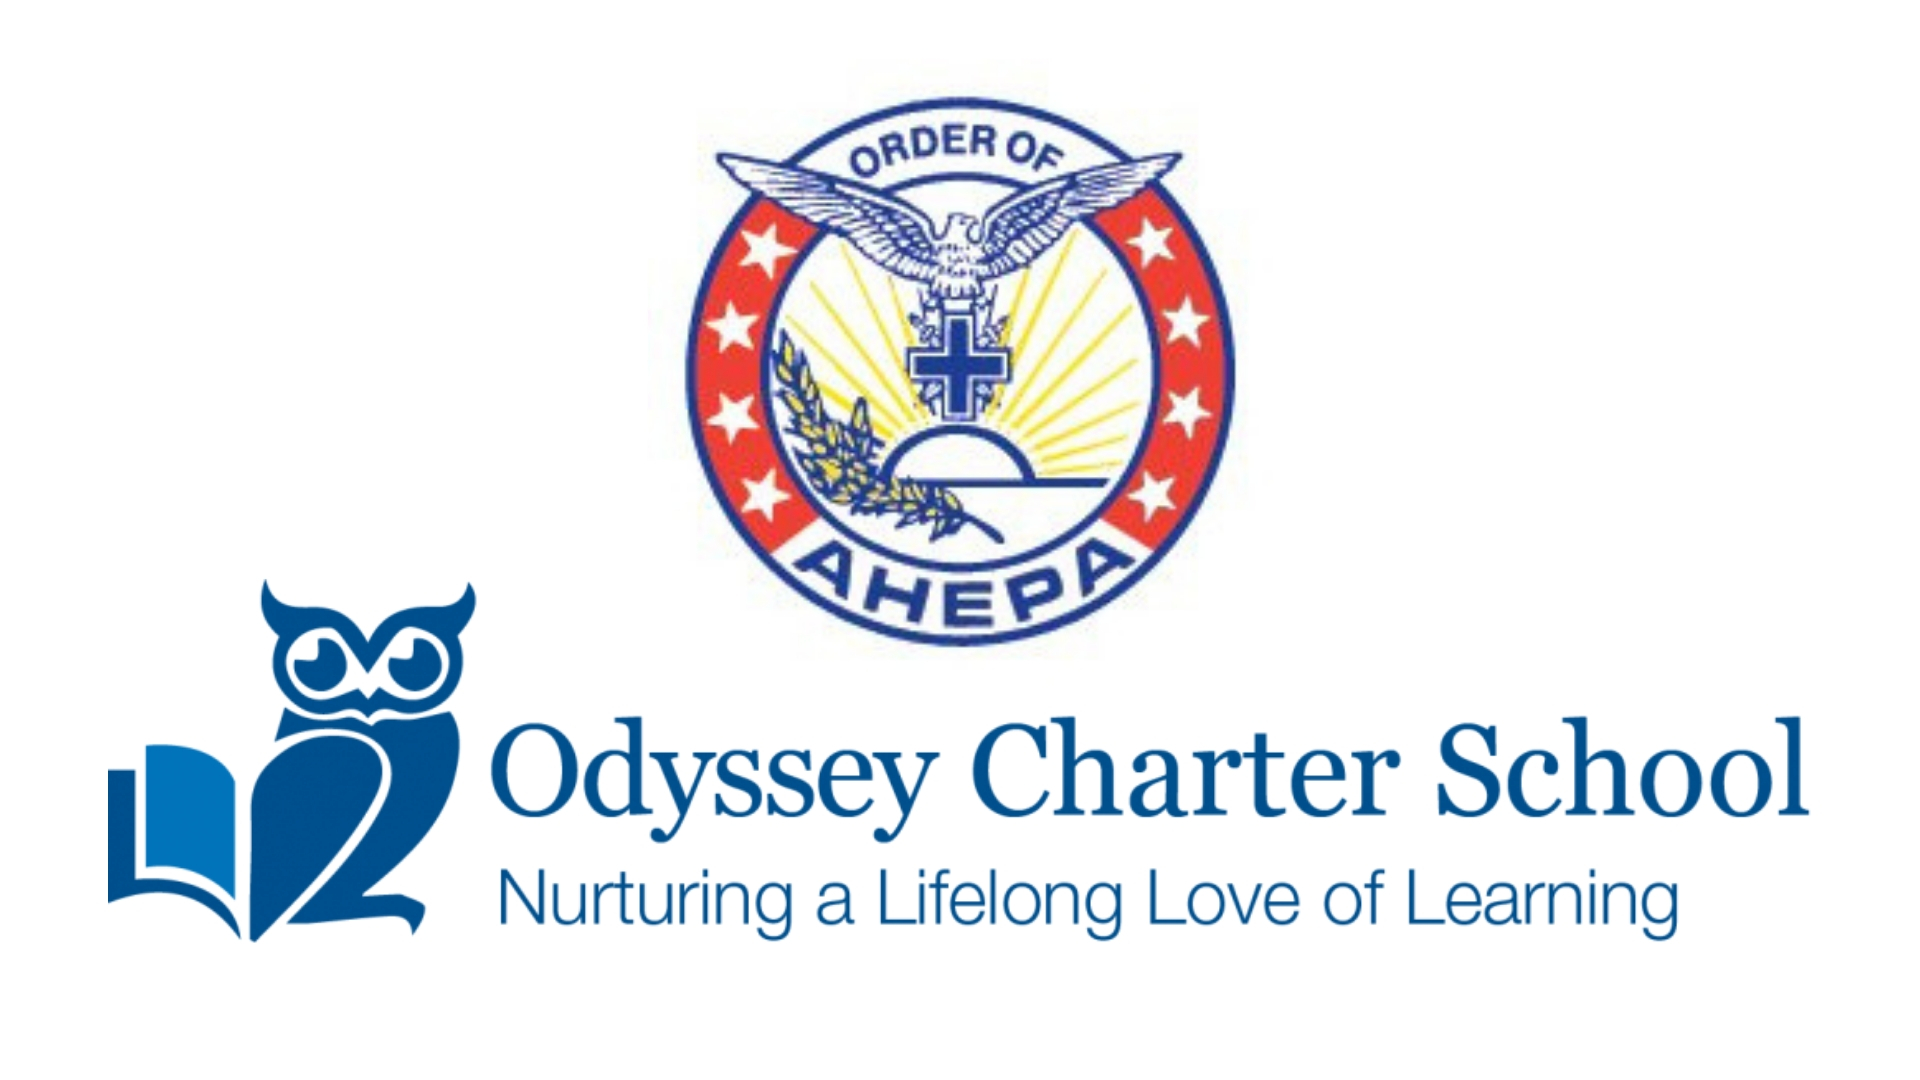 Odyssey Charter School - Nurturing a Lifelong Love of Learning